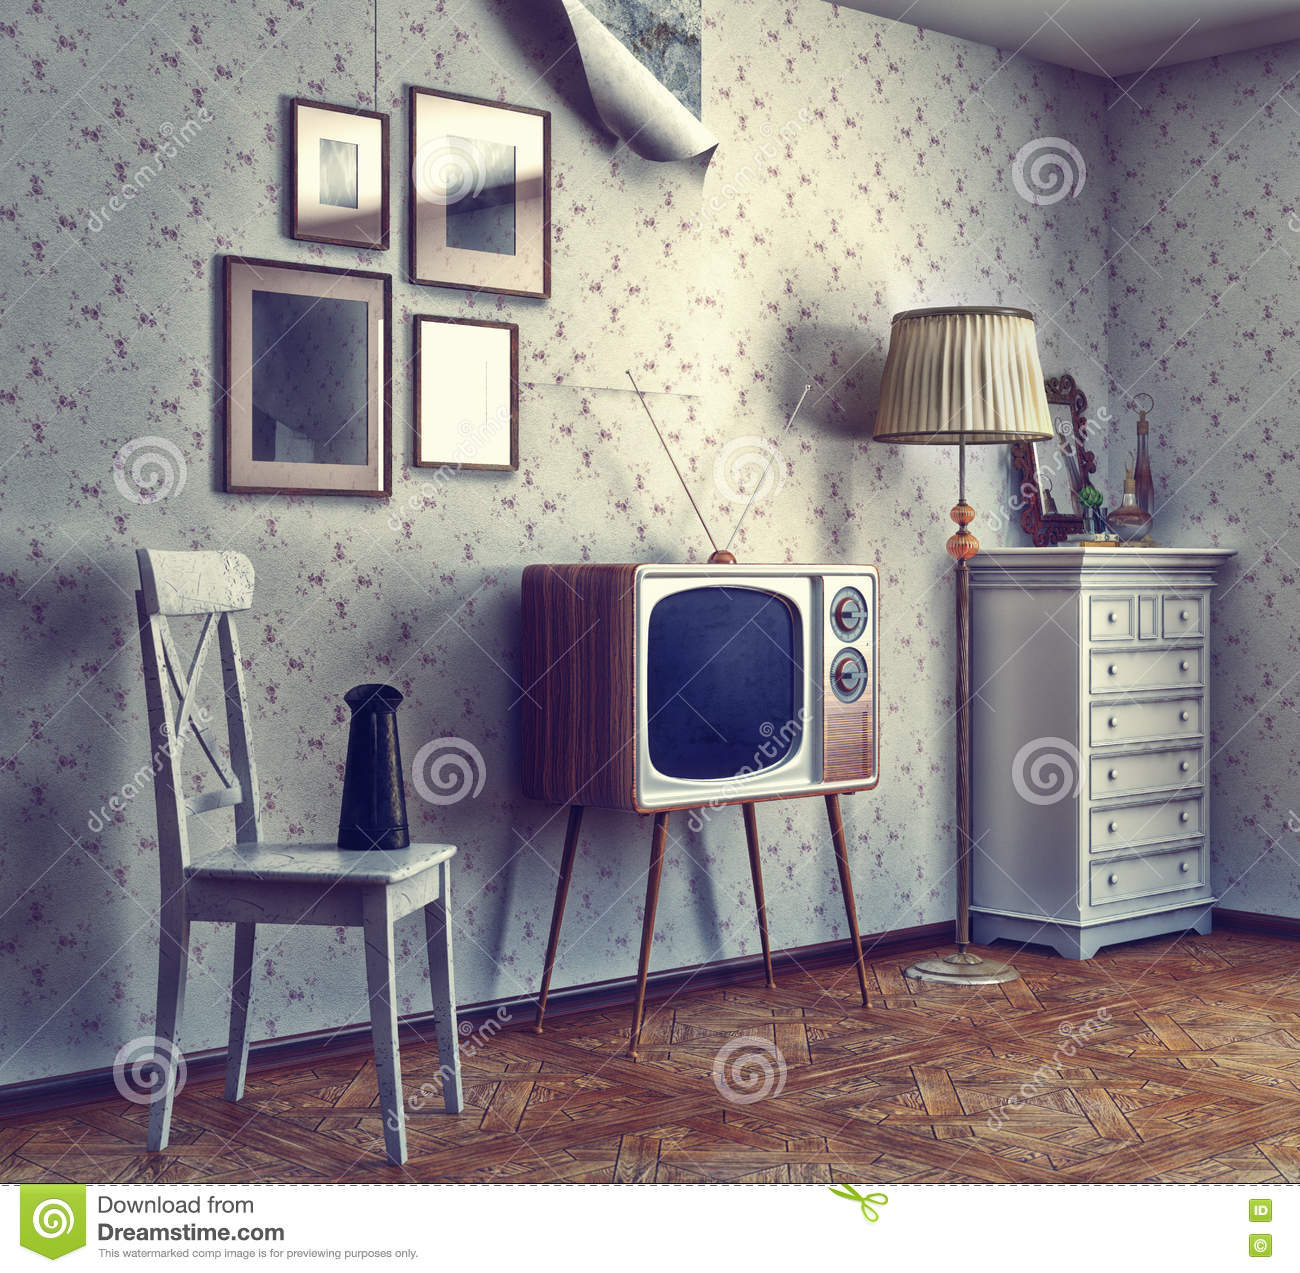 Retro Interior retro interior stock photography - image: 28826882